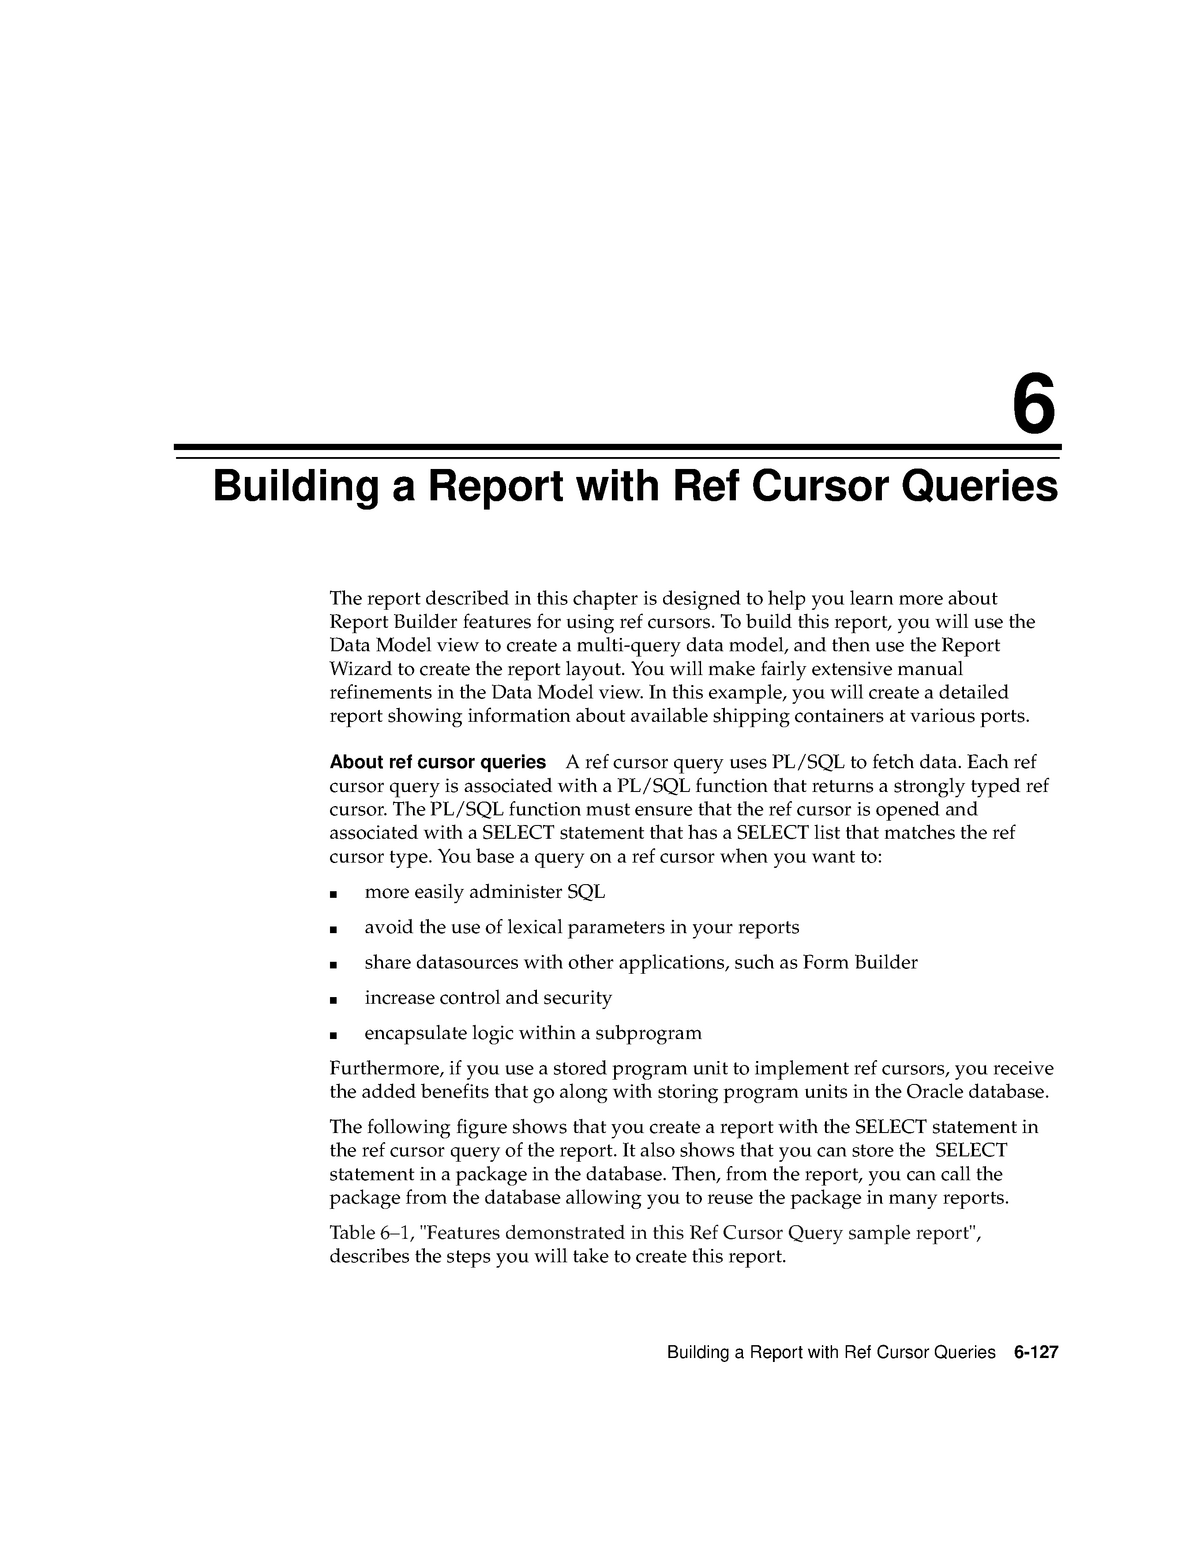 Chapter 06 - Building a Report with Ref Cursor Queries - INT